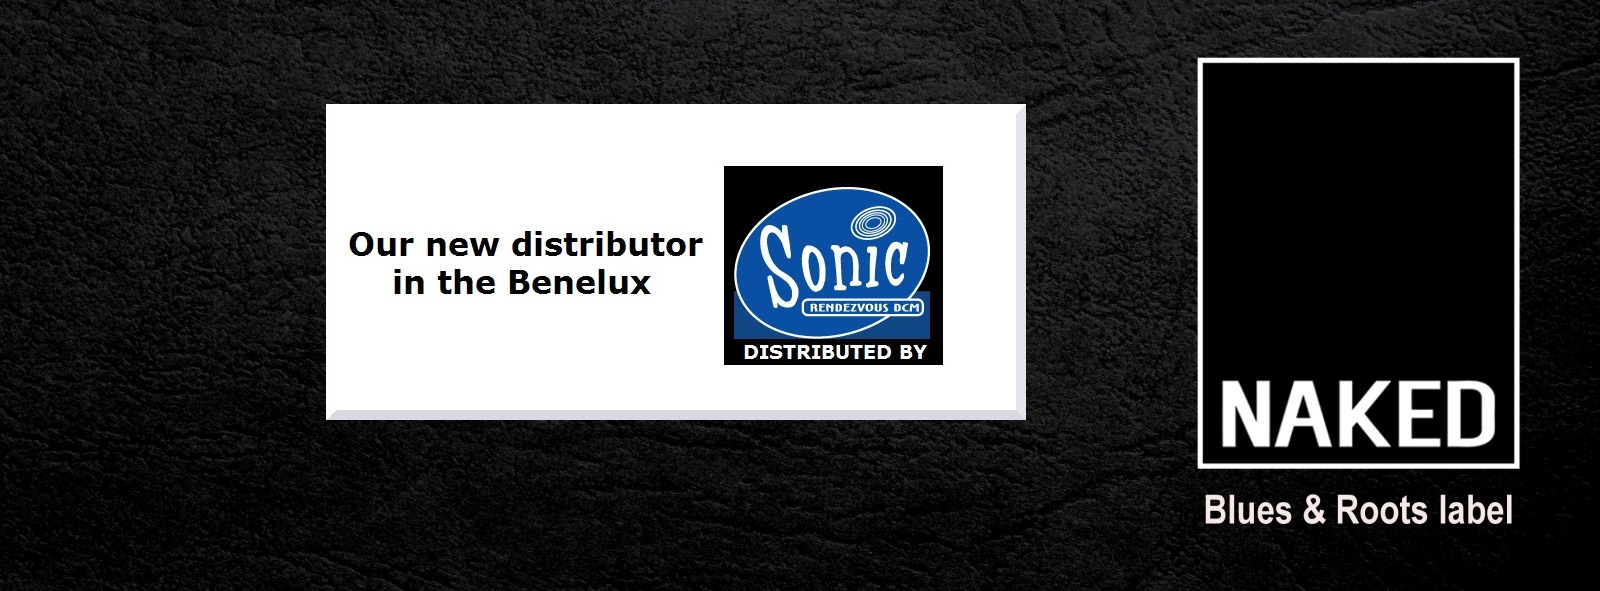 New distributor in the Benelux